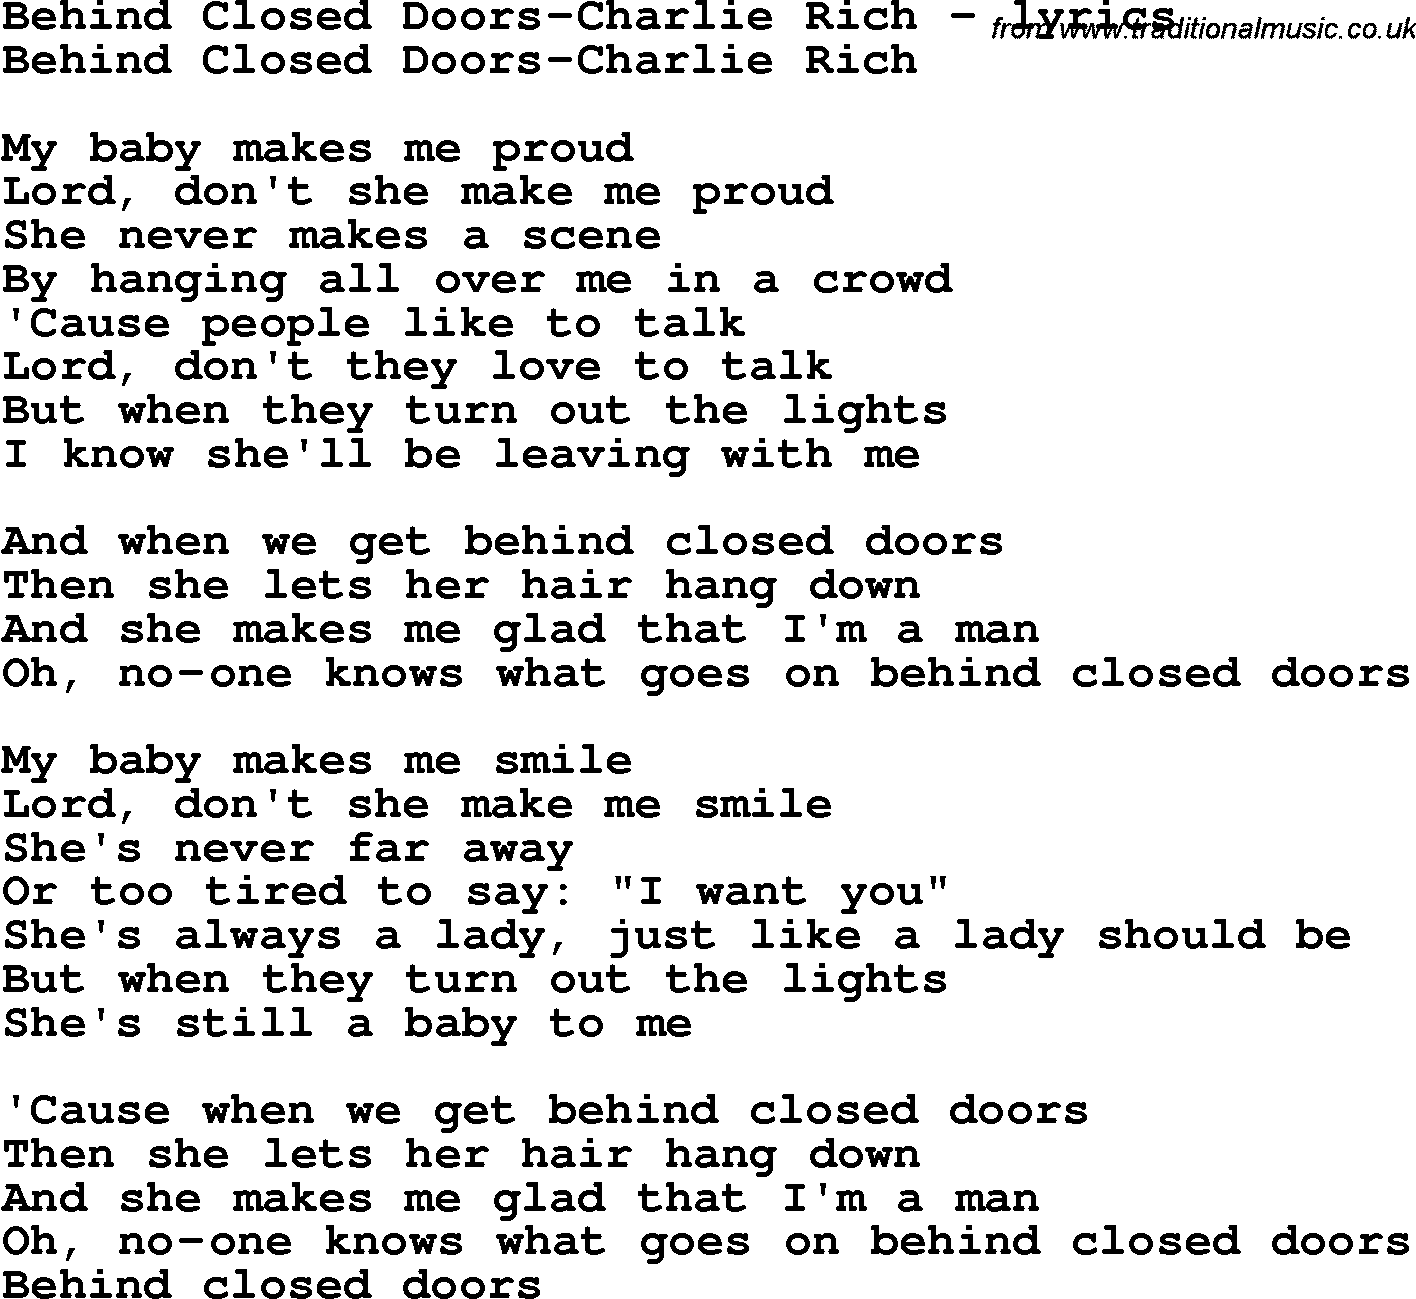 Love Song Lyrics for Behind Closed Doors-Charlie Rich  sc 1 st  Traditional Music Library & Love Song Lyrics for:Behind Closed Doors-Charlie Rich